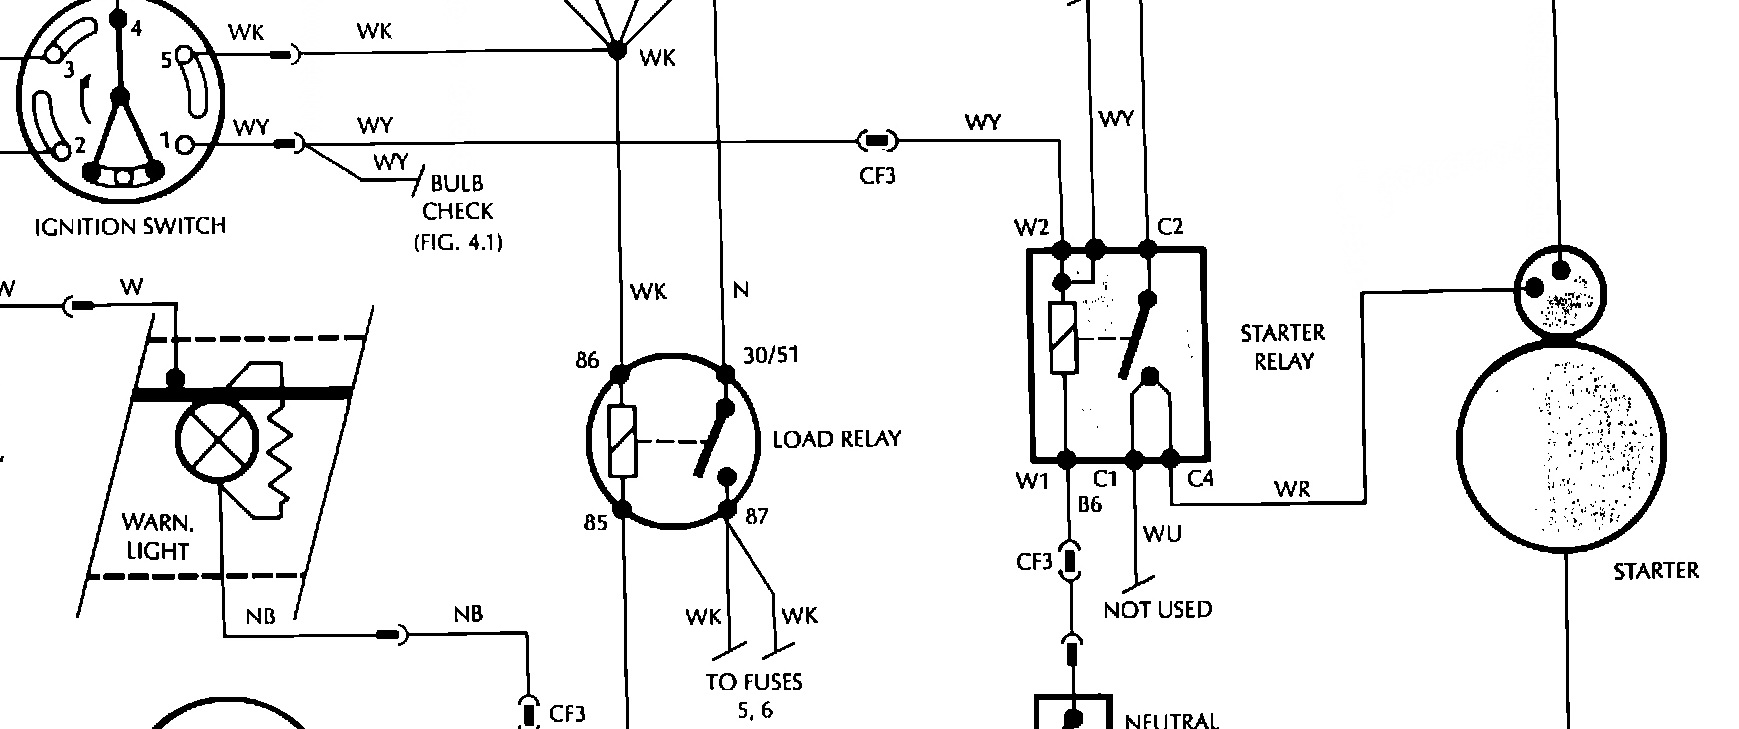 1986 jaguar xj6 wiring diagram html